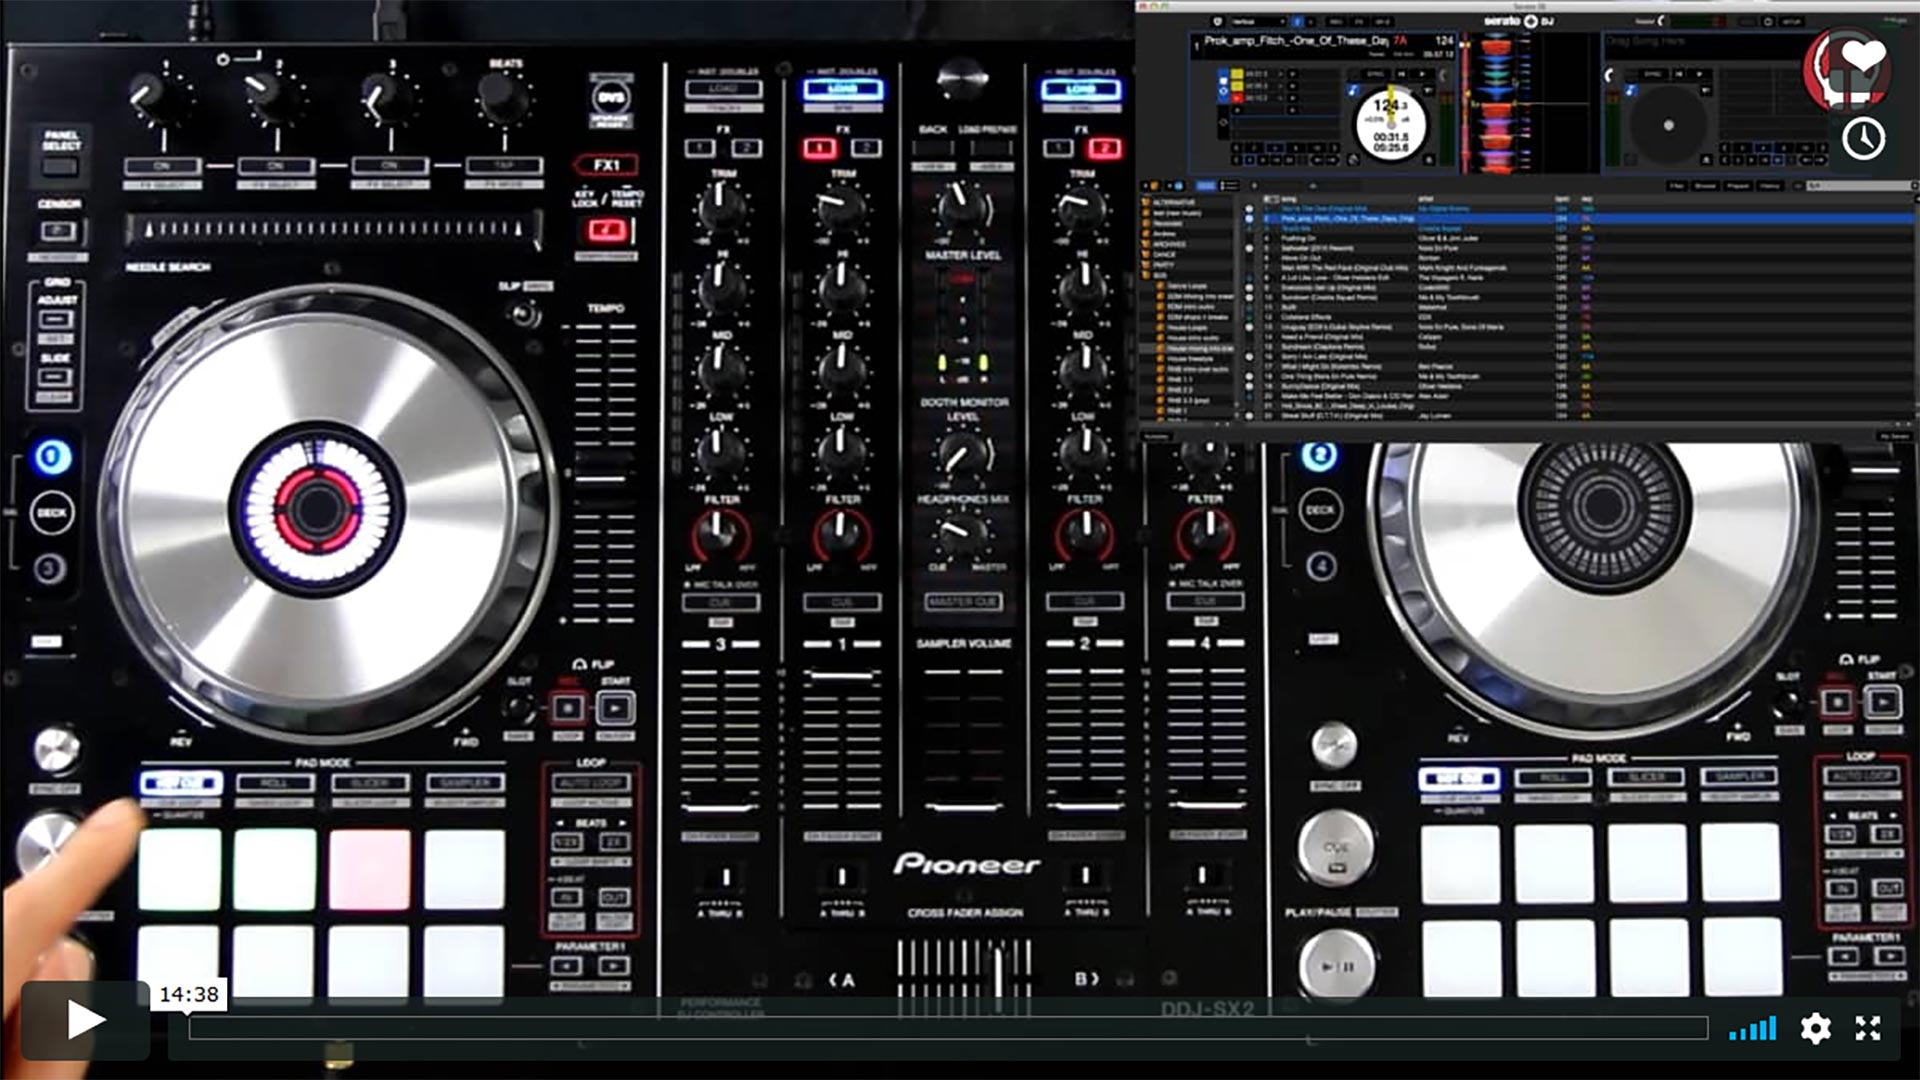 Setting Up Your DJ Controller Image